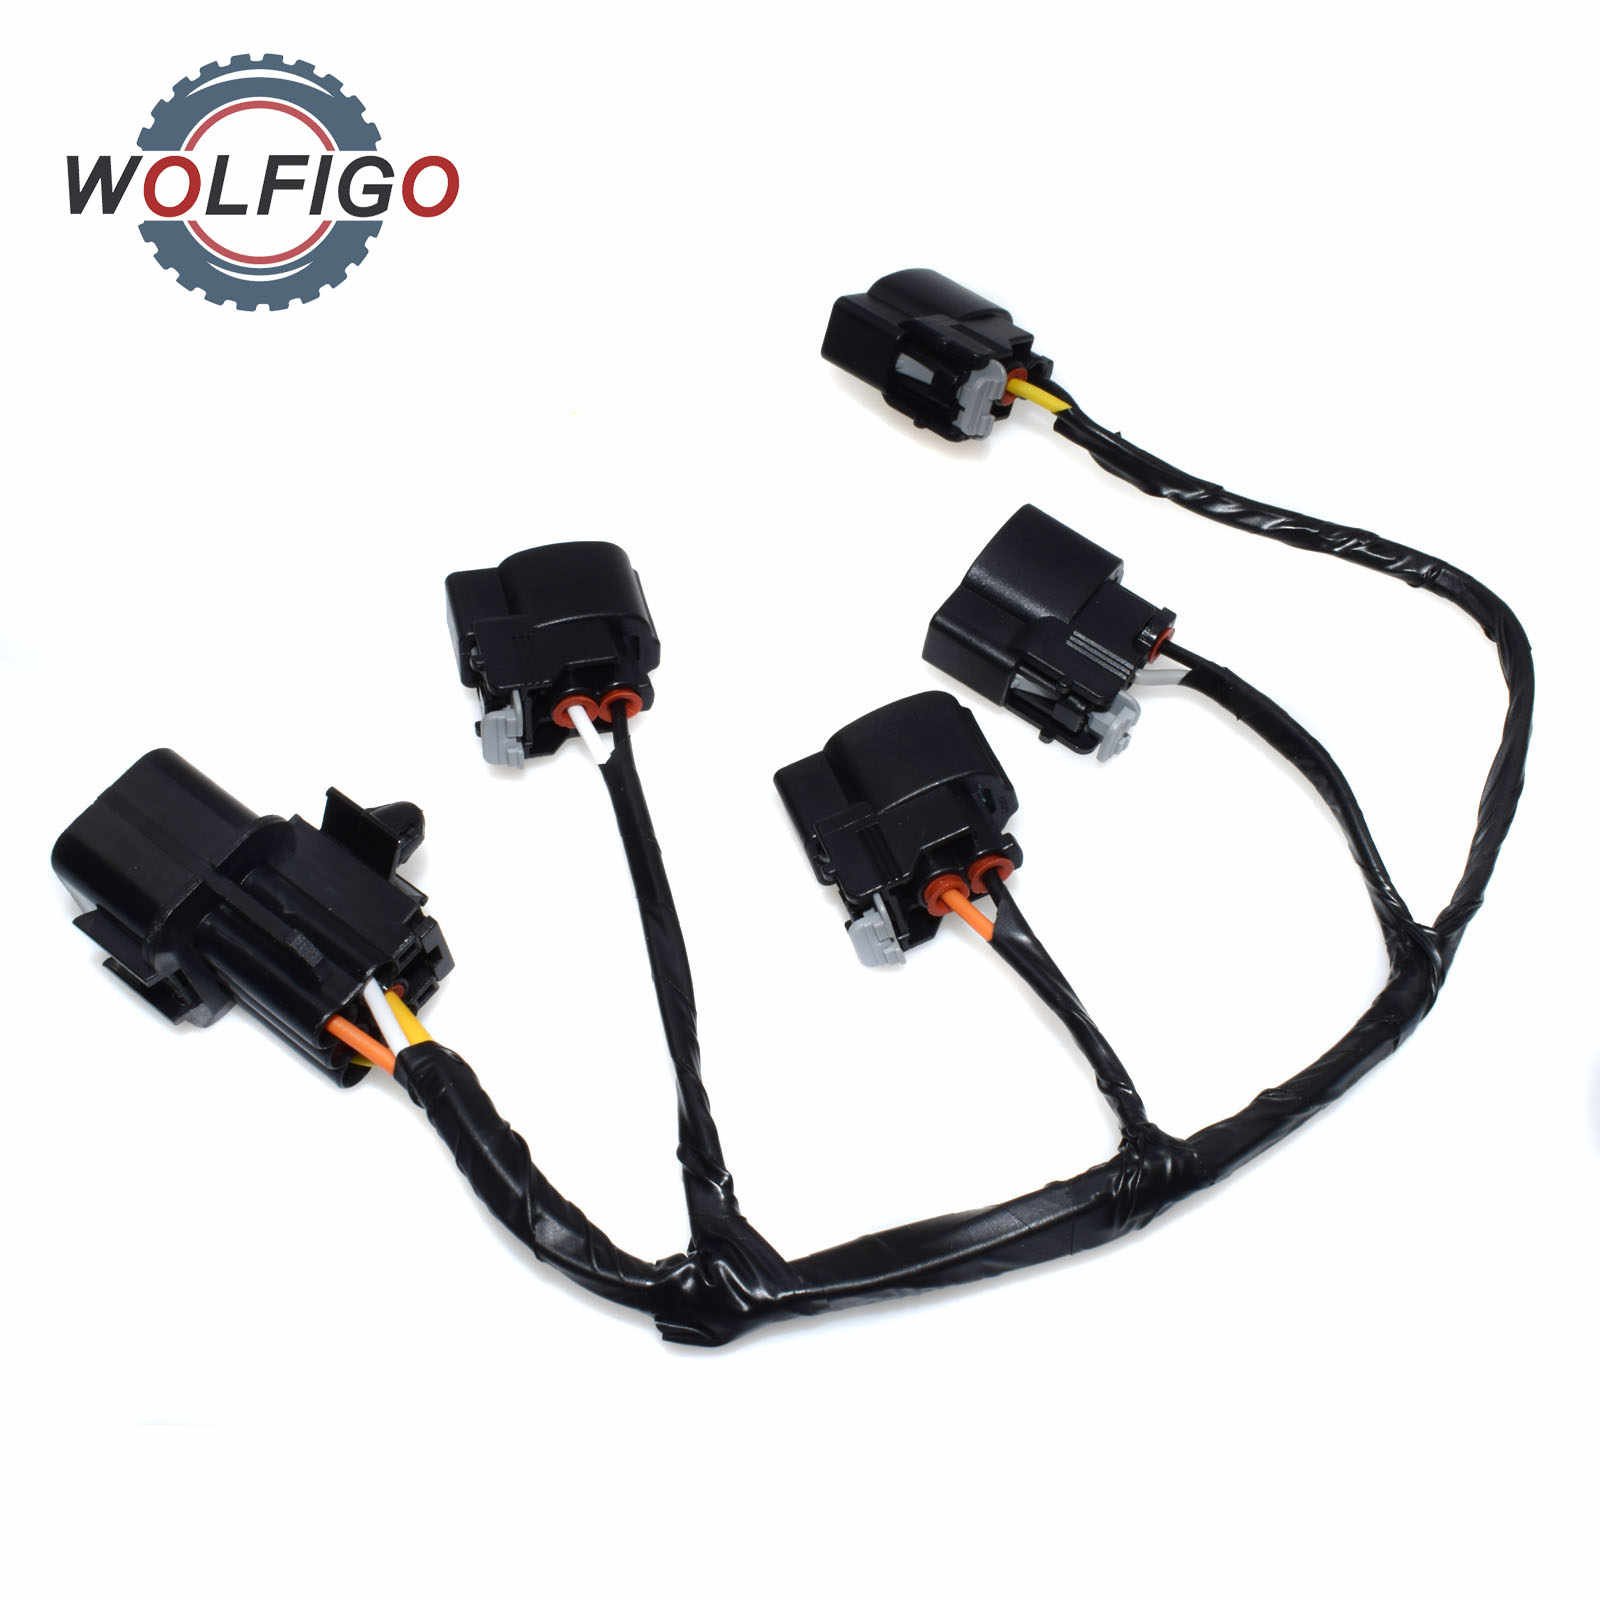 wolfigo new ignition coil wire harness for hyundai veloster kia rio soul 273502b000 27350 2b000 27301 [ 1600 x 1600 Pixel ]